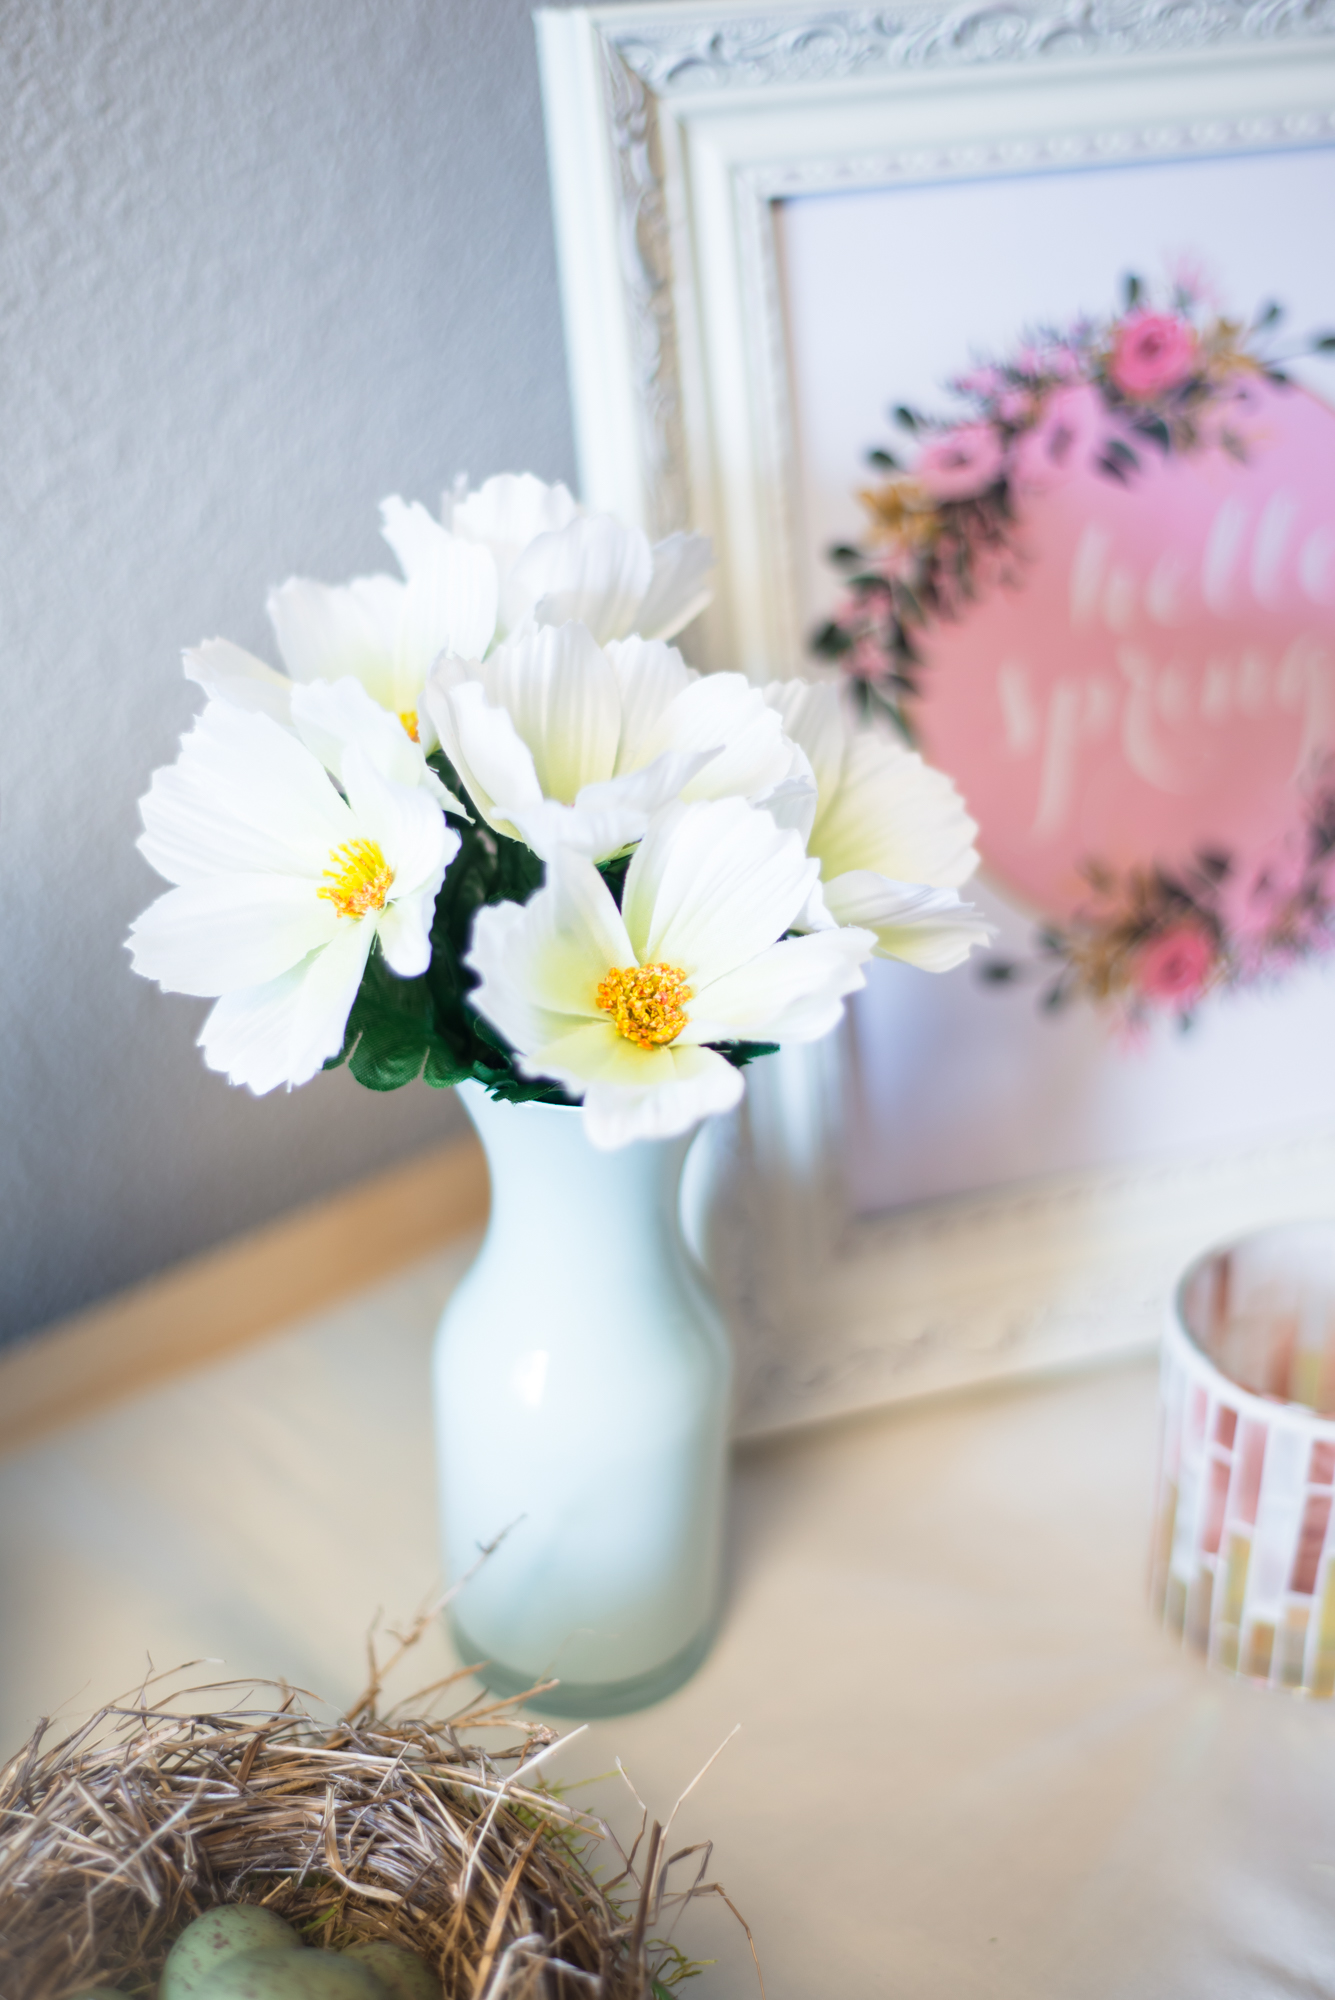 Cheap Spring Decor DIY Ideas | Dollar Tree Projects